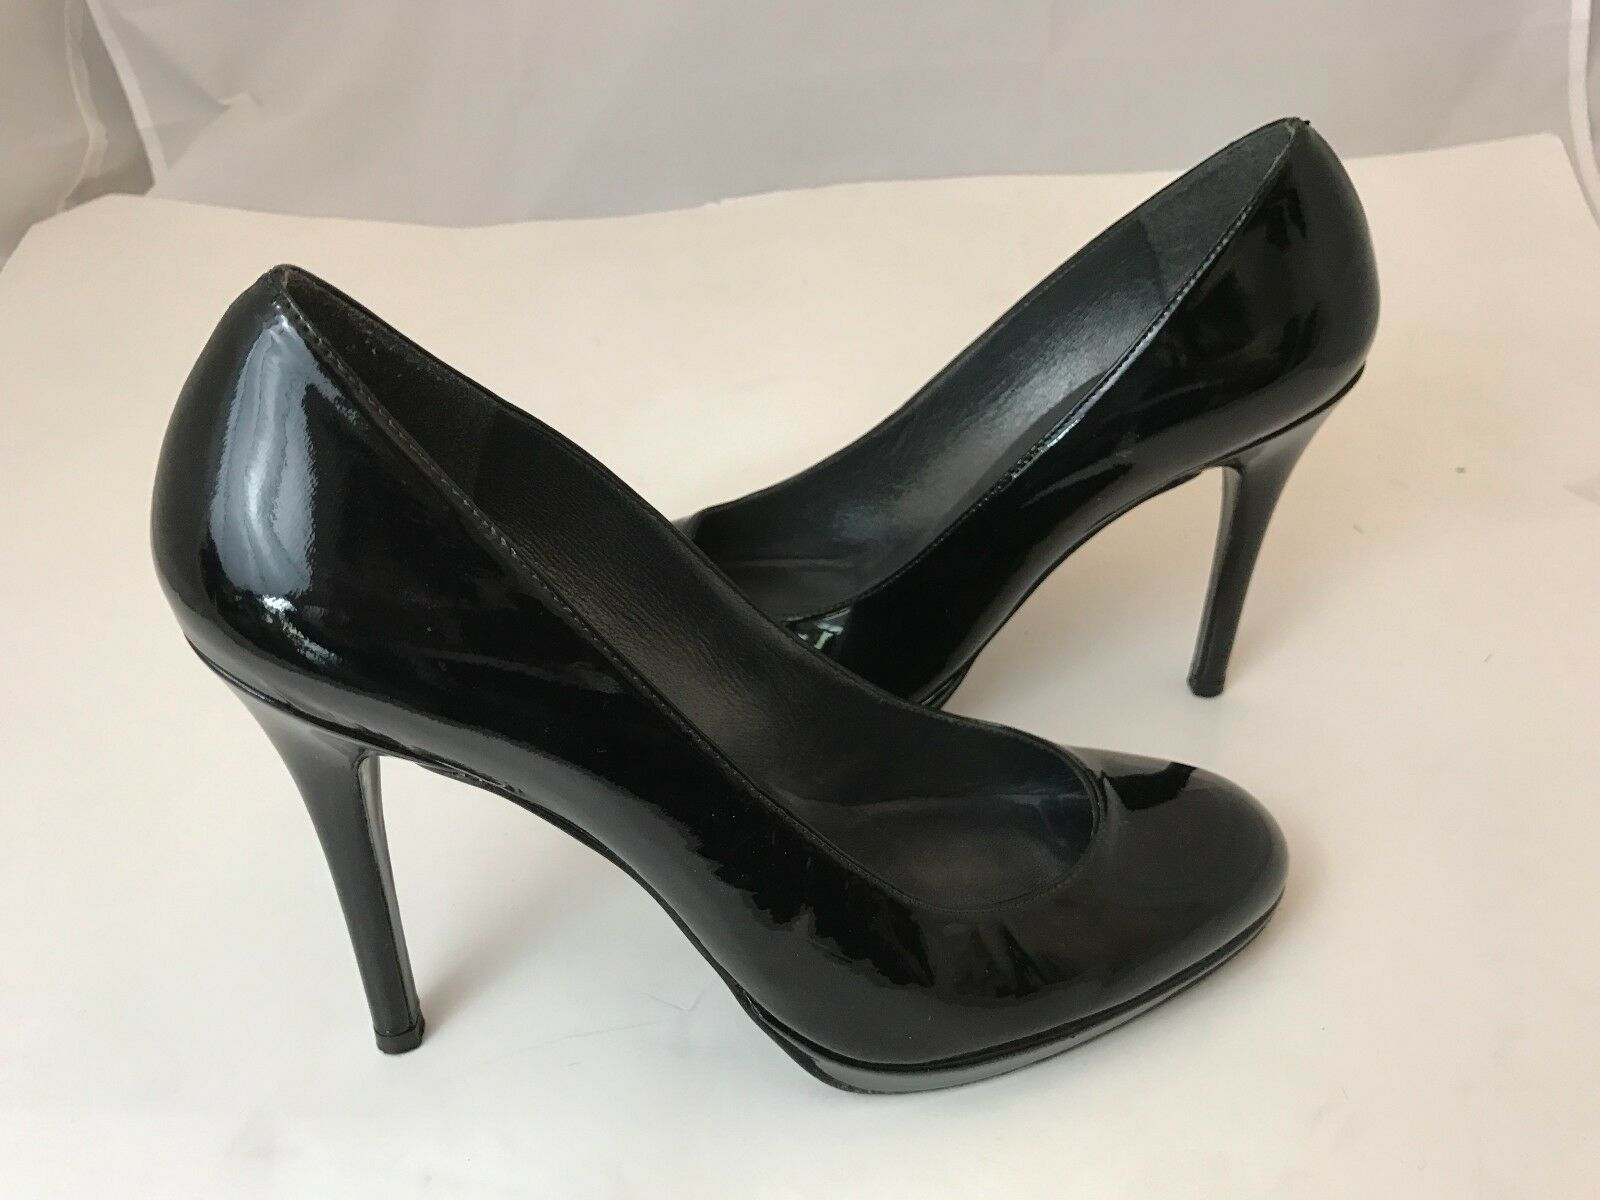 STUART WEITZMAN 117517 nero PATENT LEATHER PLATFORM PUMPS HEEL SZ 9M